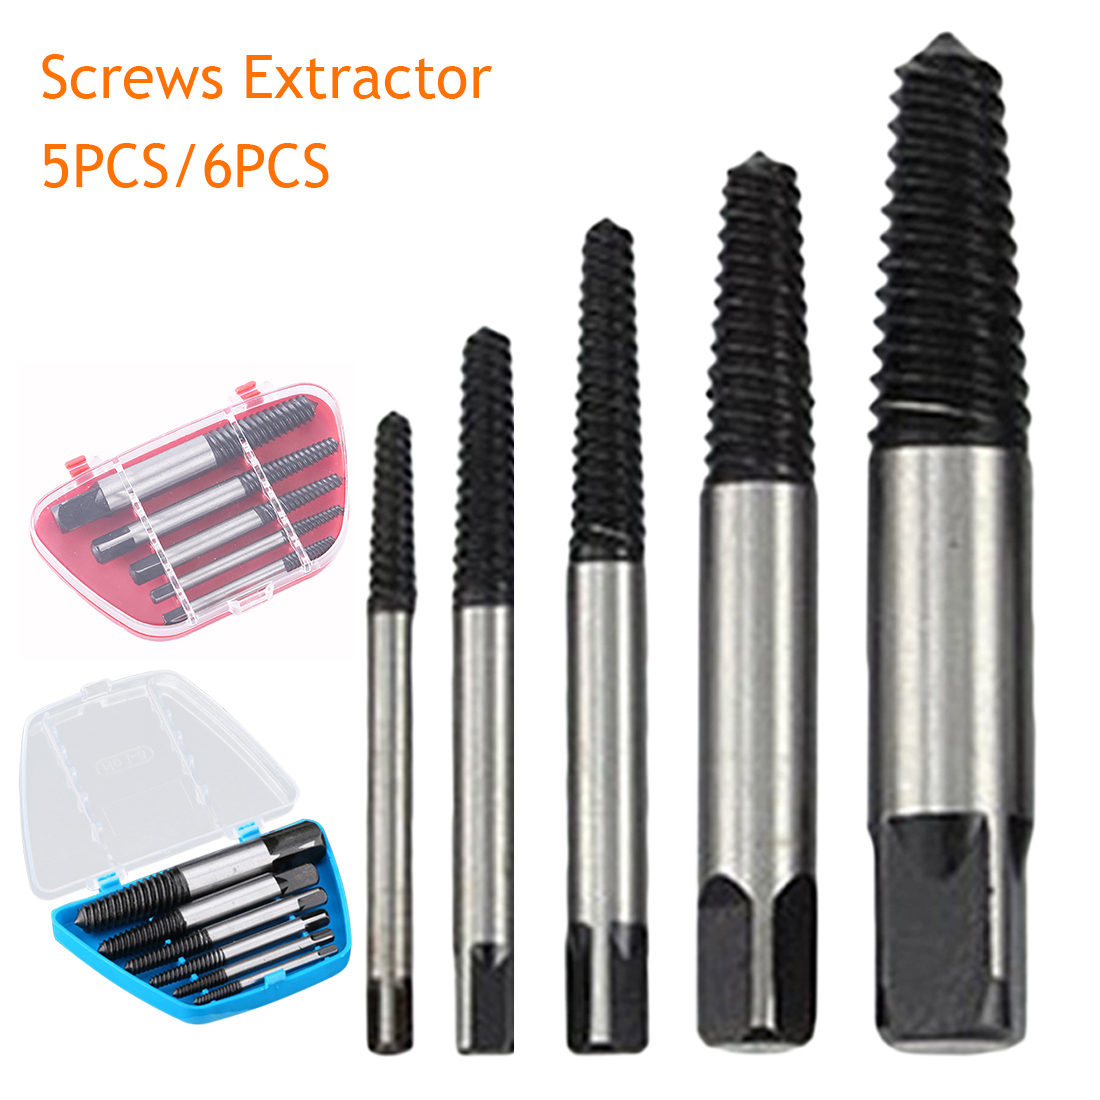 Drill Bit 5pcs/6pcs Screw Extractor Broken Bolt Remover Drill Guide Bits Set Drill Bits Easy Out Remover With Case